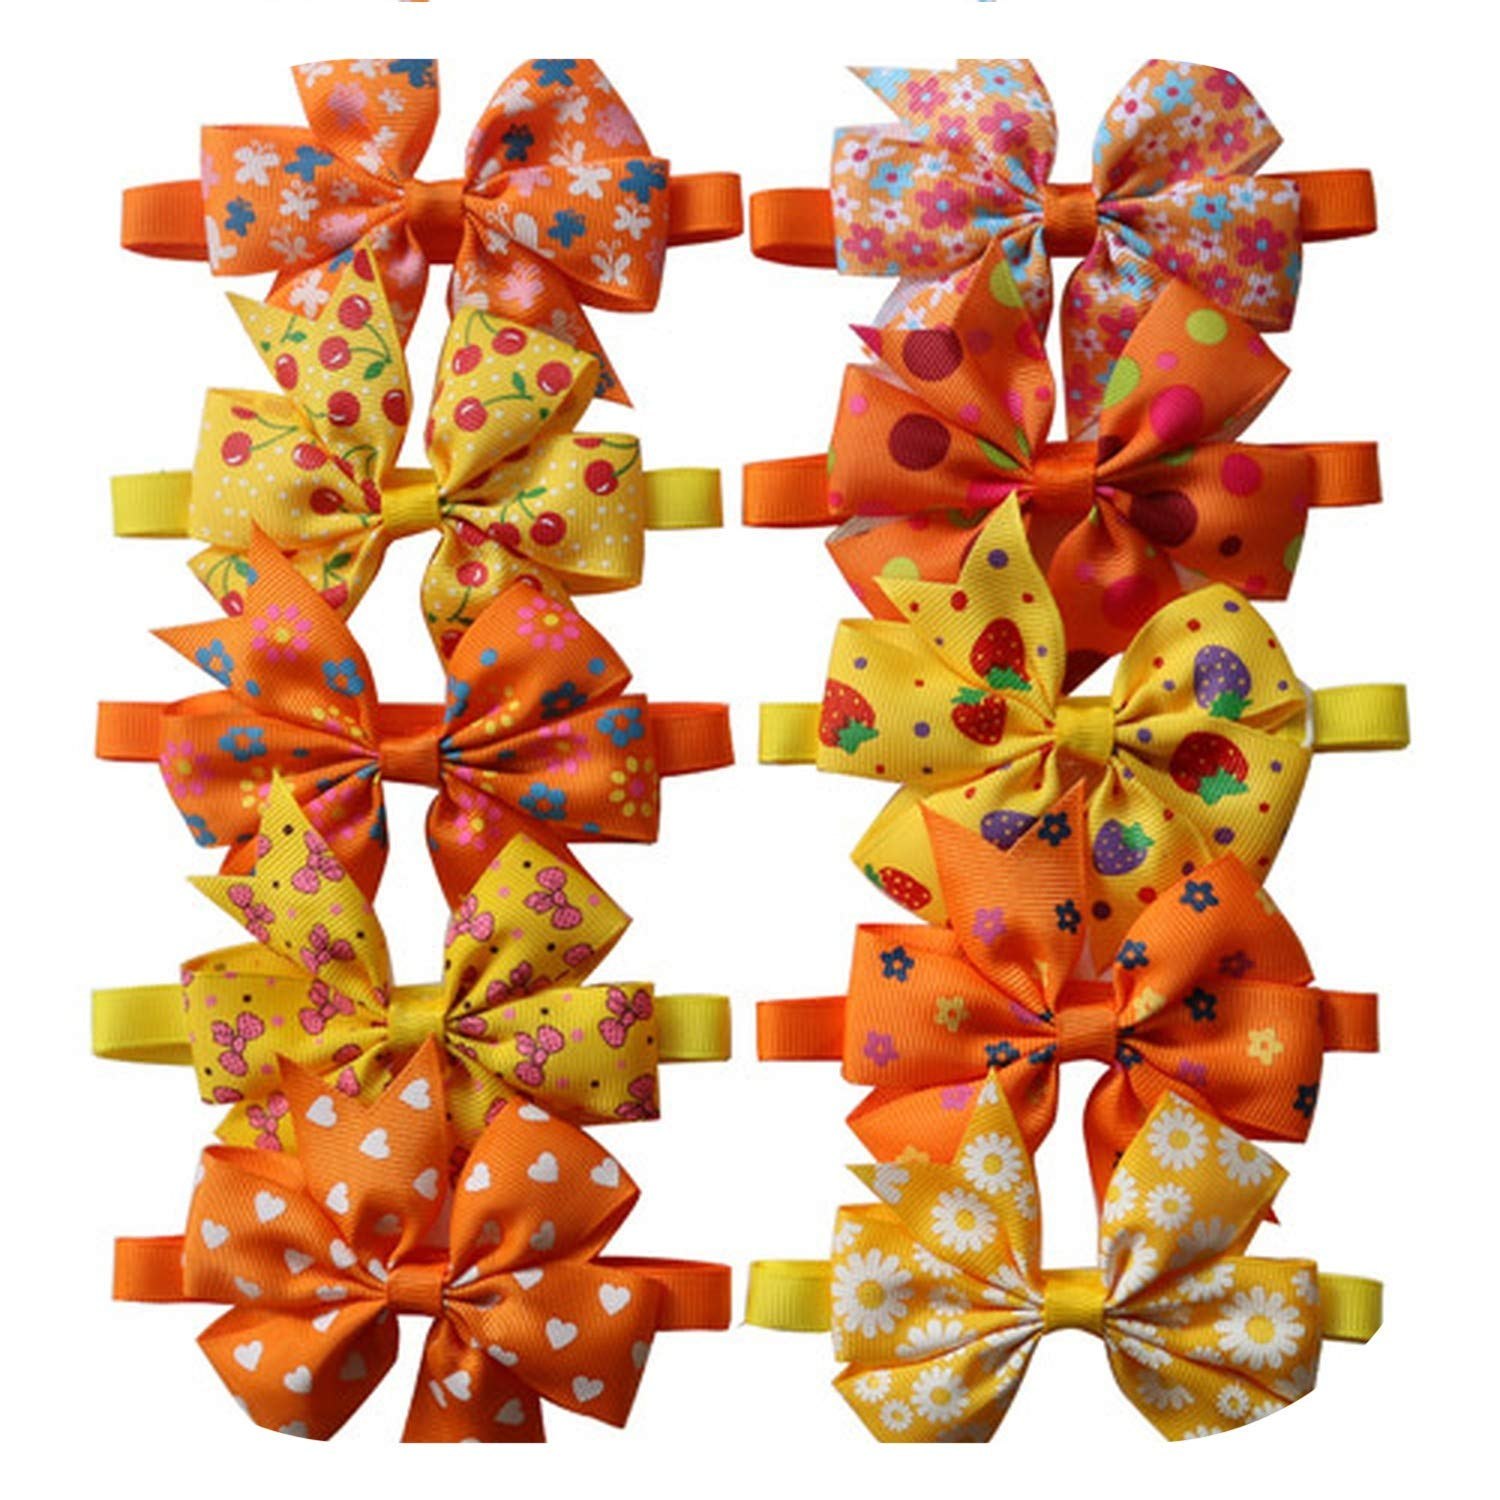 100pcs Fall Pet Cat Dog Grooming Accessories Orange Thanksgiving Pet Supplies Cat Dog Bow Ties Cat Samll Middle Dog Bowties,Mix Colour by PG-One